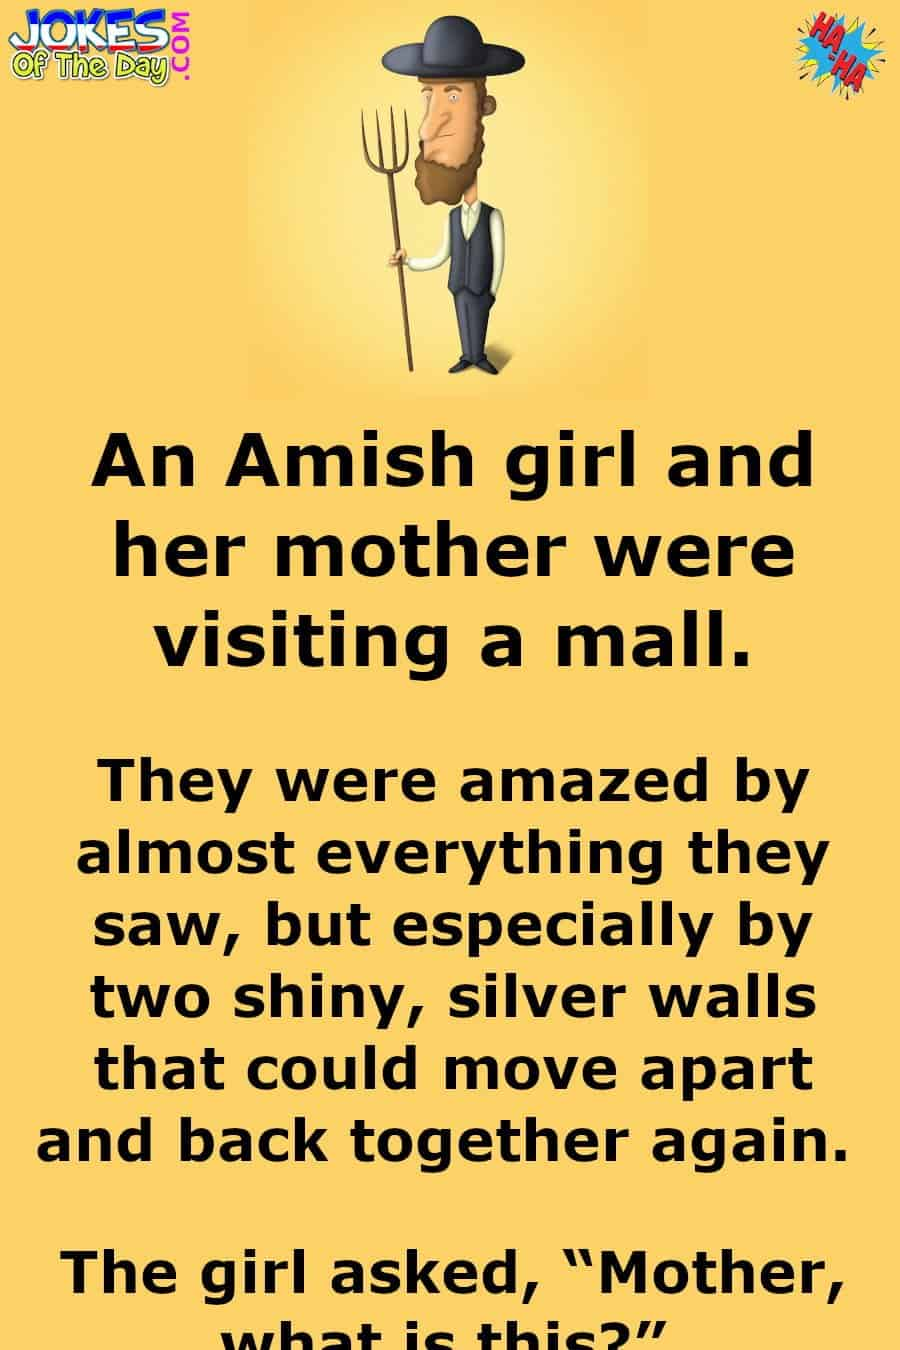 Silly Joke - The Amish Family Visit A Mall